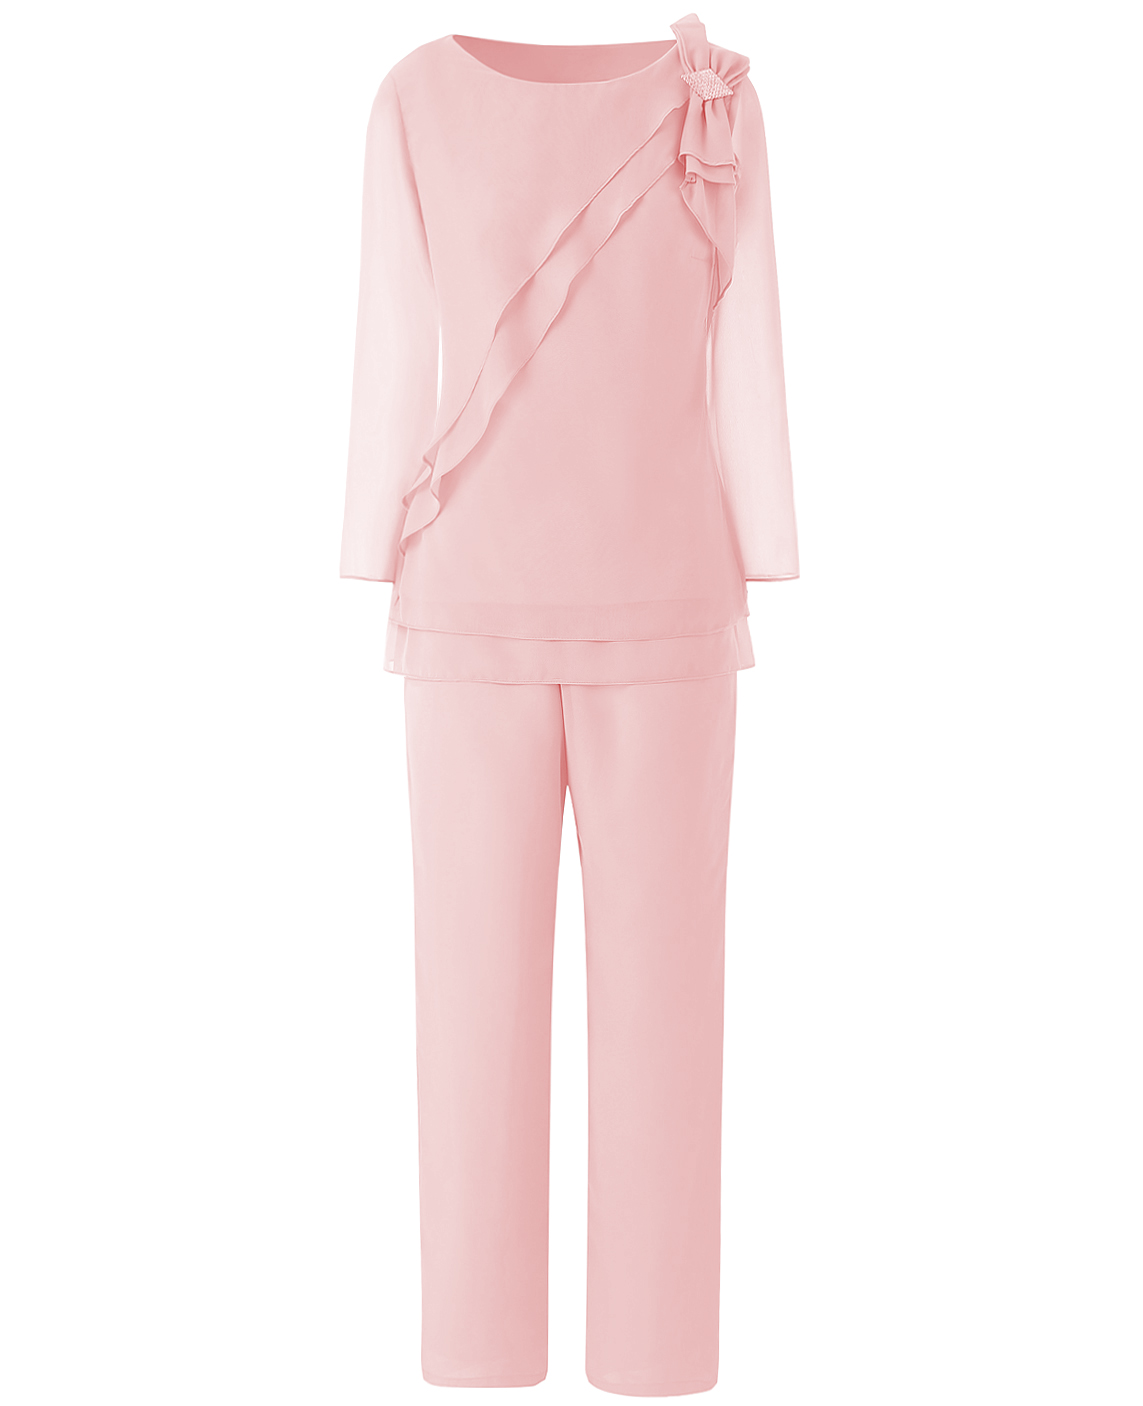 Solovedress Pink Bow-knot Mother Of The Groom Dress Pantsuits Womens Chiffon 2 Pieces Pant Set Suit Formal Wedding Tiered Top